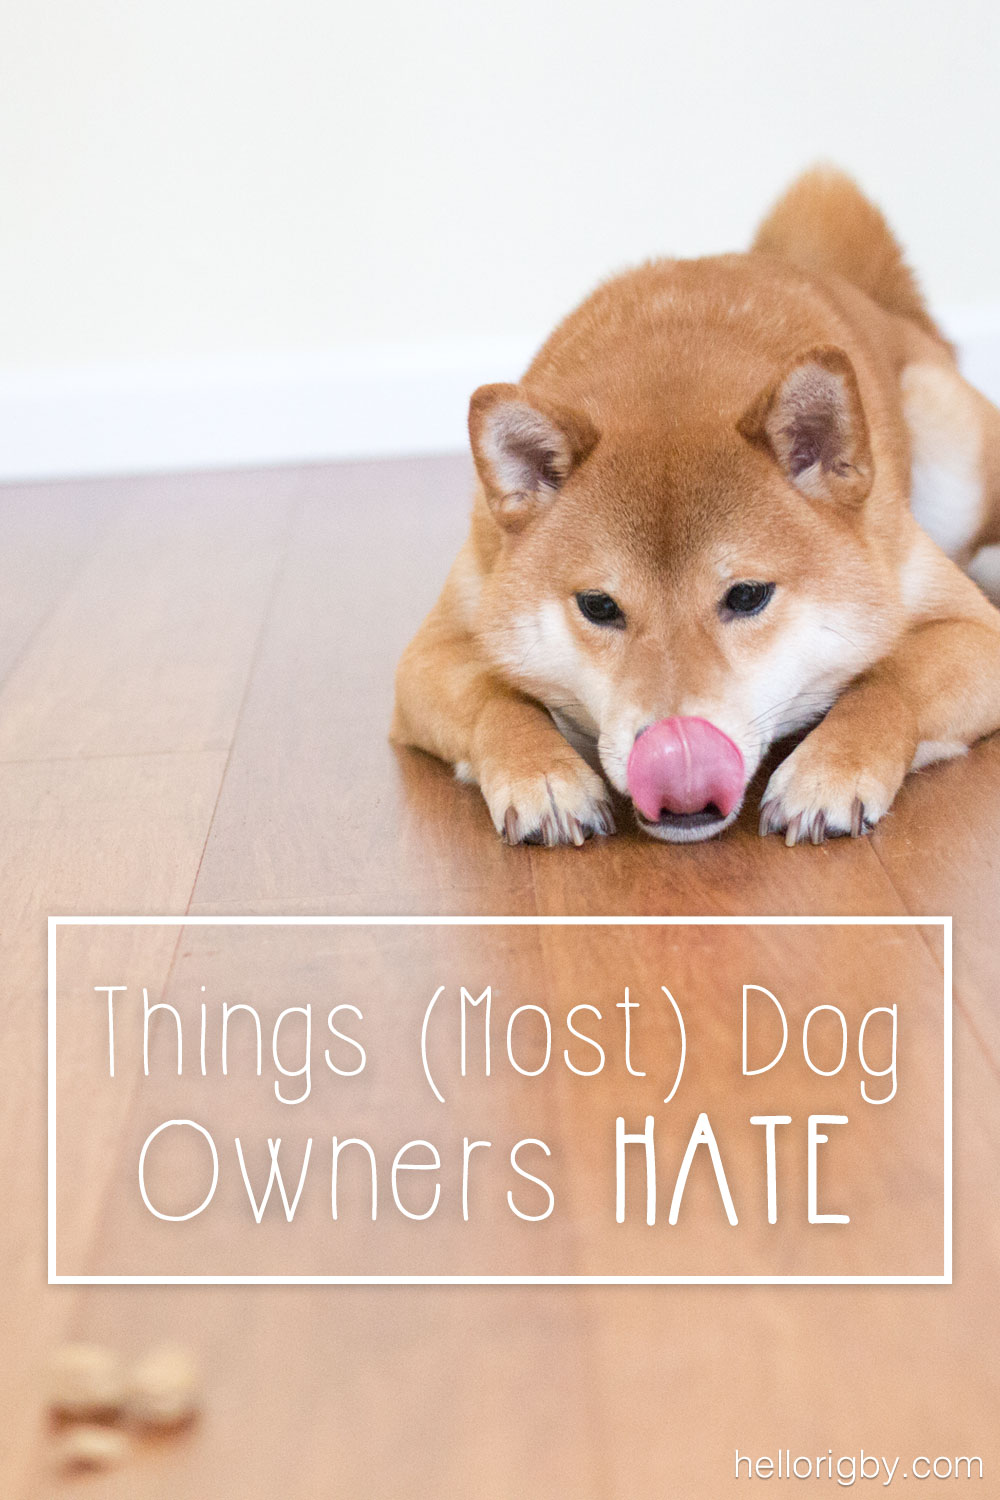 Things (Most) Dog Owners Hate